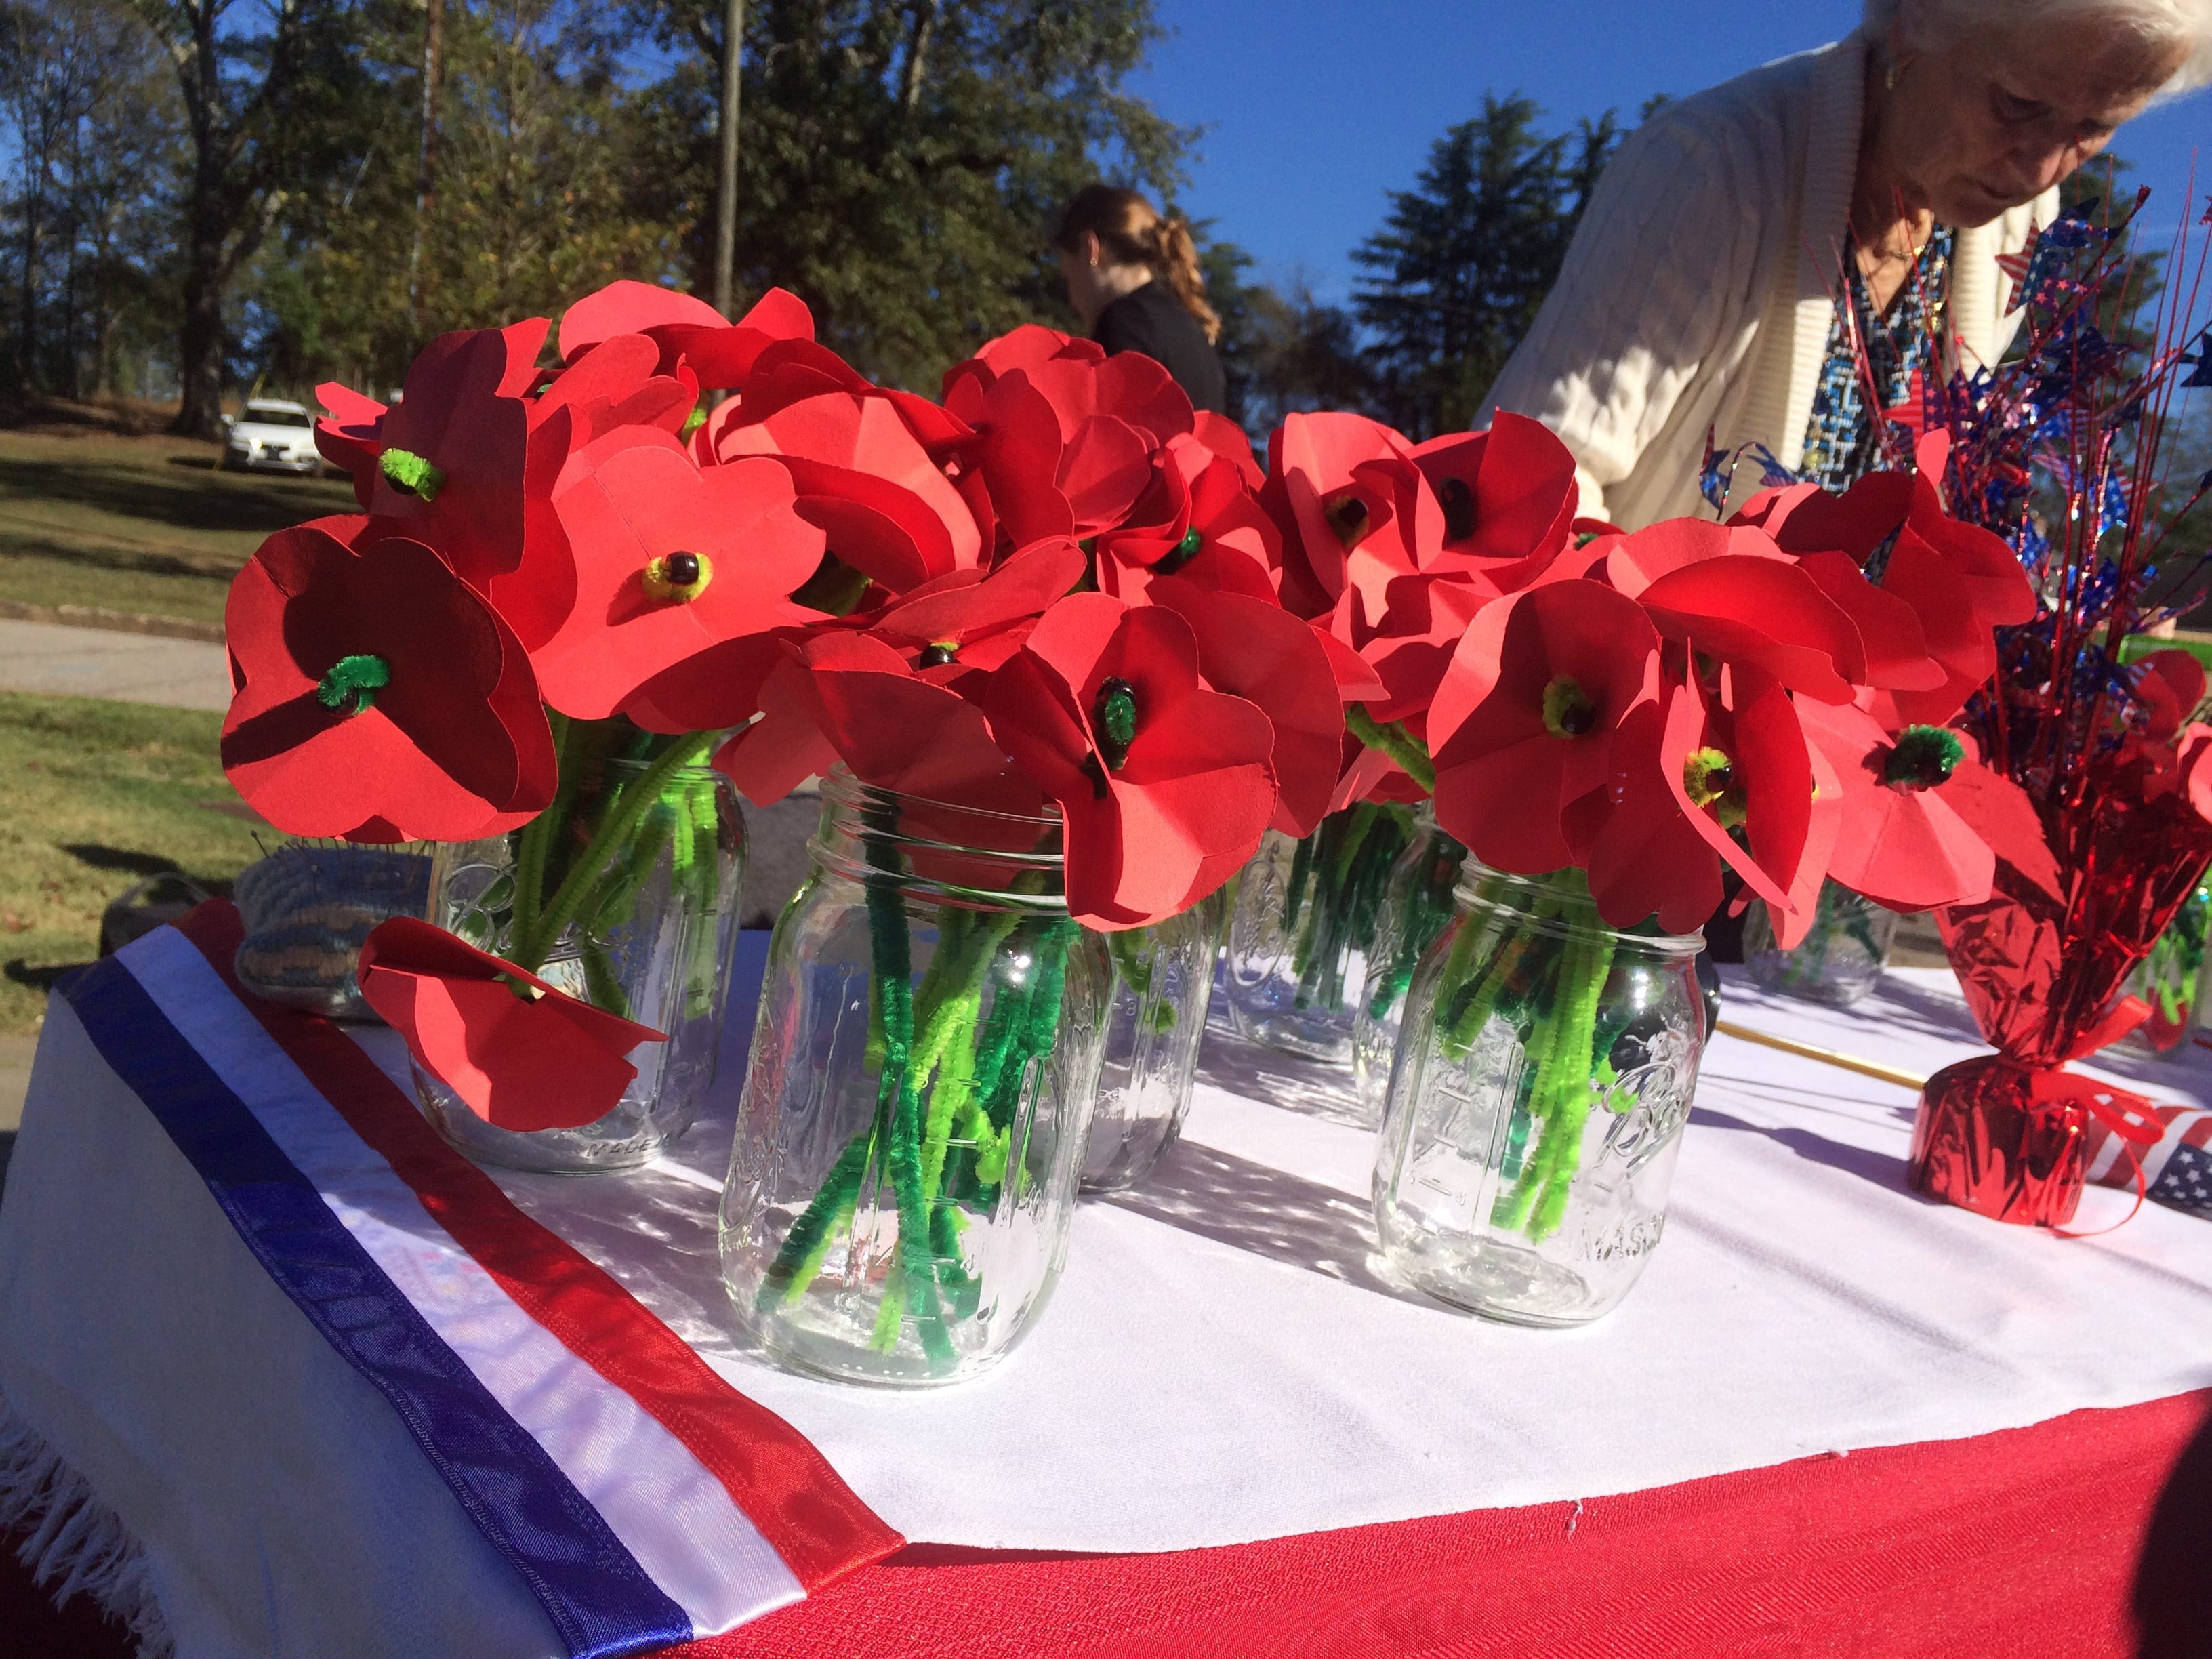 Homemade poppy pins await guests at the Veteran's Day ceremony at Oconee Hill Cemetery.